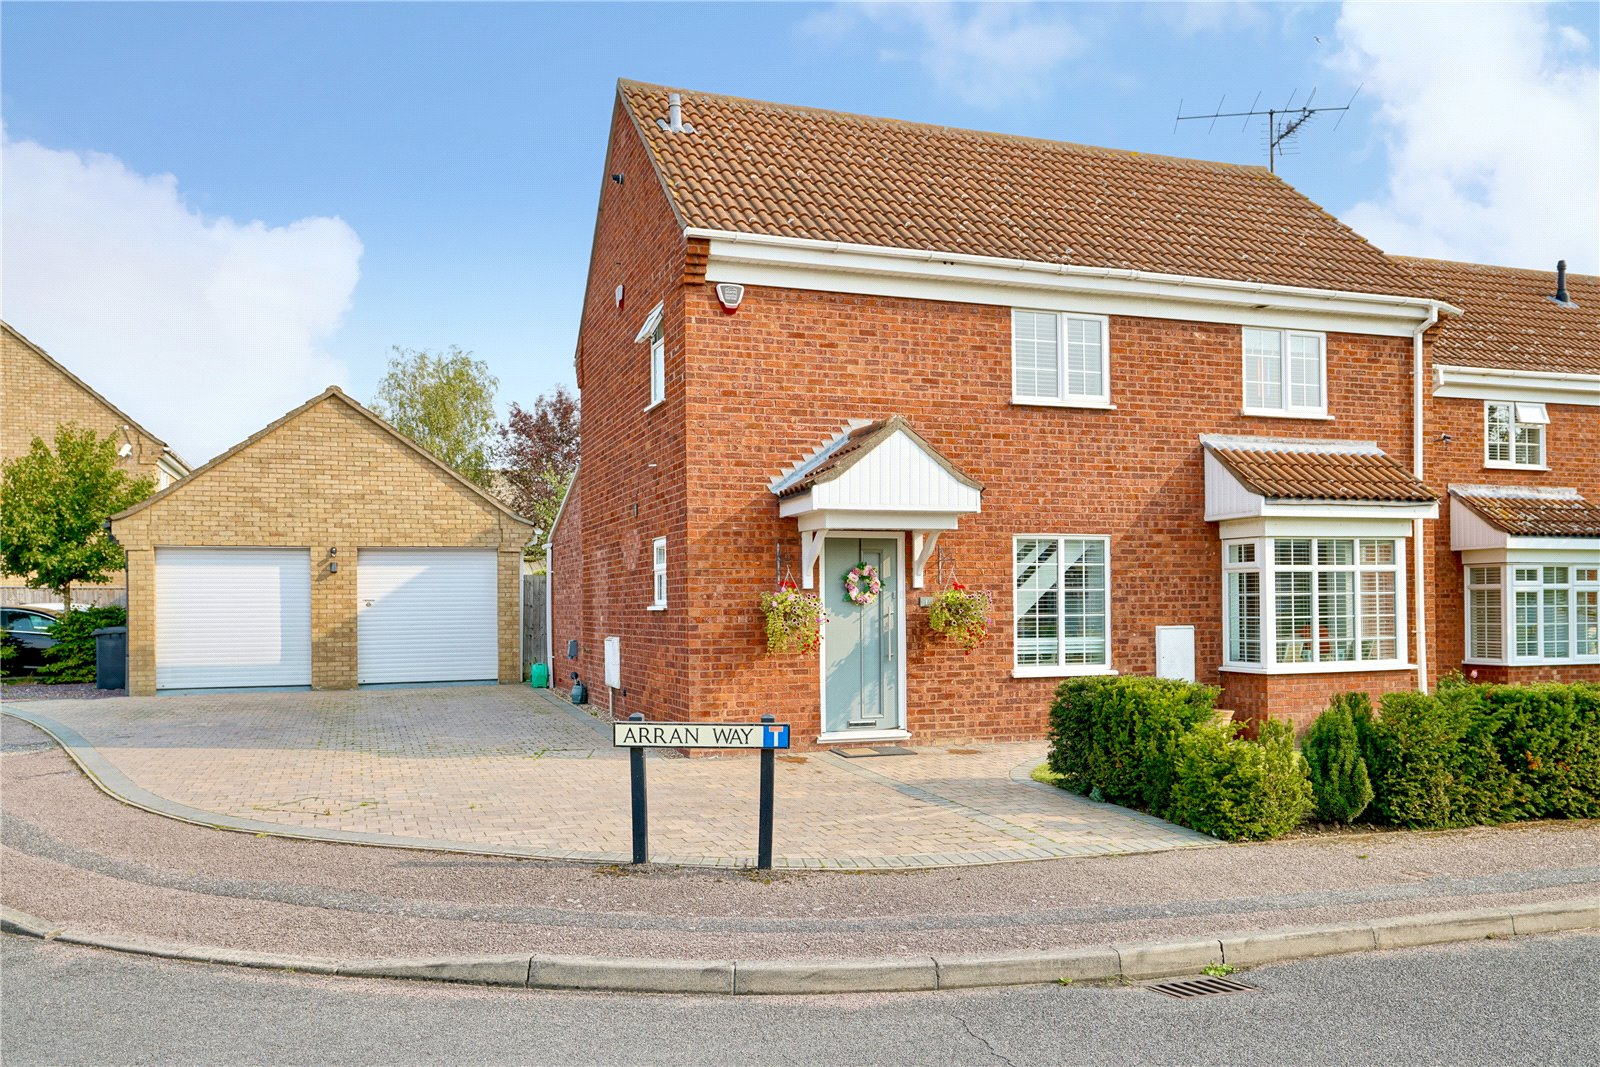 4 bed house for sale in St. Ives, PE27 3DT, PE27